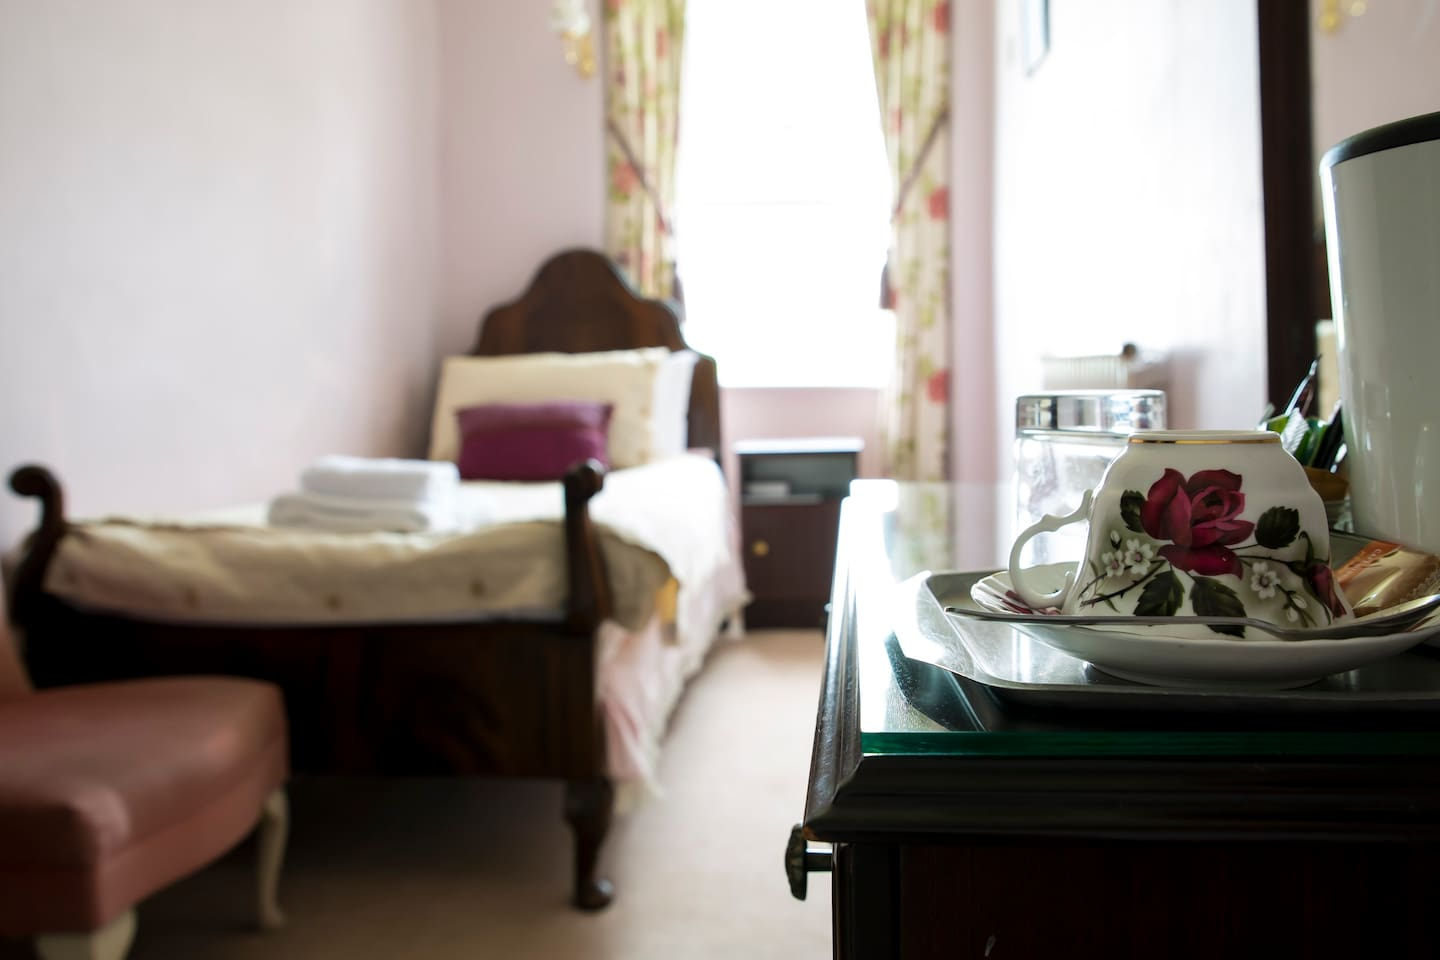 This is Brantfell, one of three single shower -ensuite rooms at our Bed and Breakfast, Blenheim Lodge. As you can see, towels, a hospitality tray and pretty Laura Ashley curtains and colours make this room a homely place to stay.